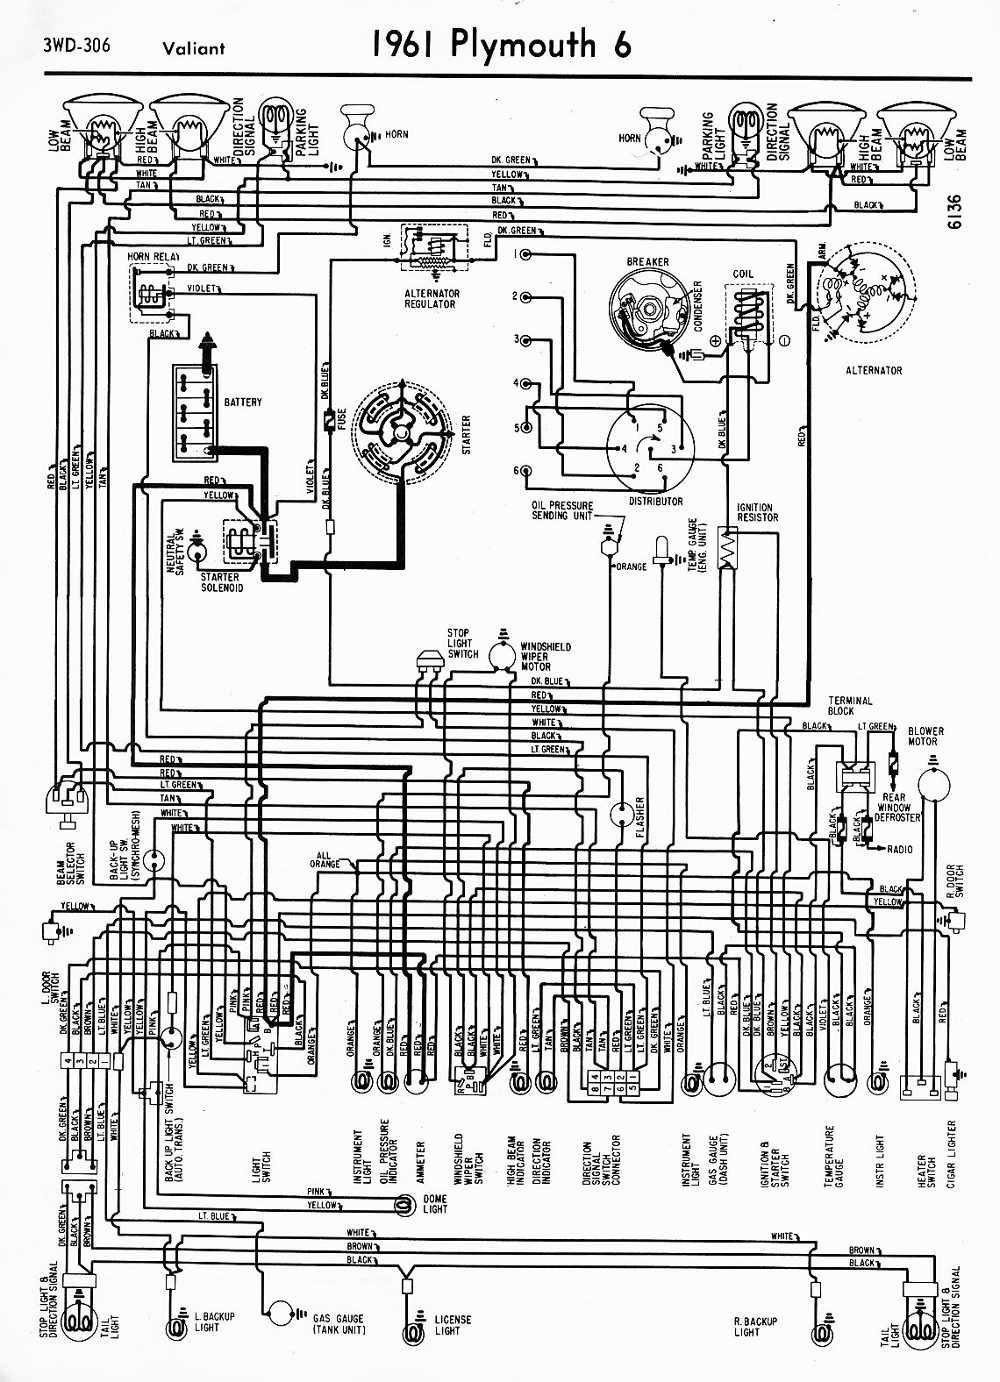 wiring diagrams of 1961 plymouth 6 valiant?t\\\=1508746019 1947 plymouth wiring diagram 1947 wiring diagrams instruction 1954 plymouth belvedere wiring diagram at crackthecode.co